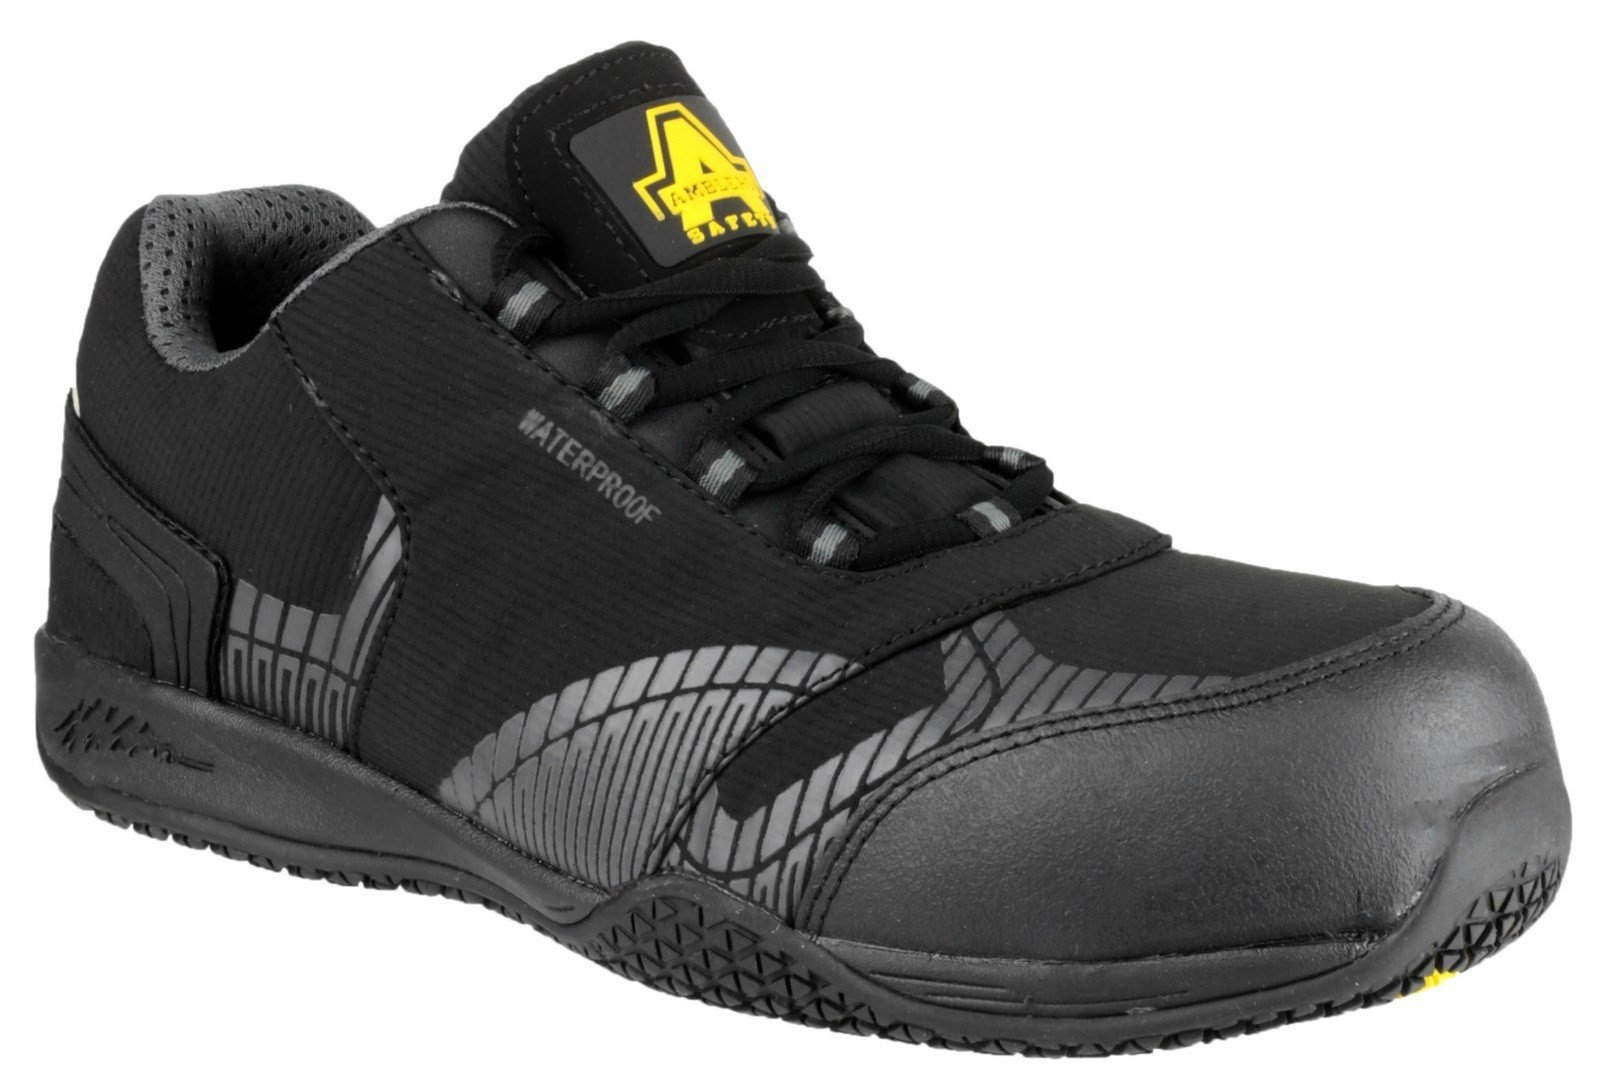 Amblers Unisex Safety Waterproof Metal Non Leather Trainer Black - Black 6